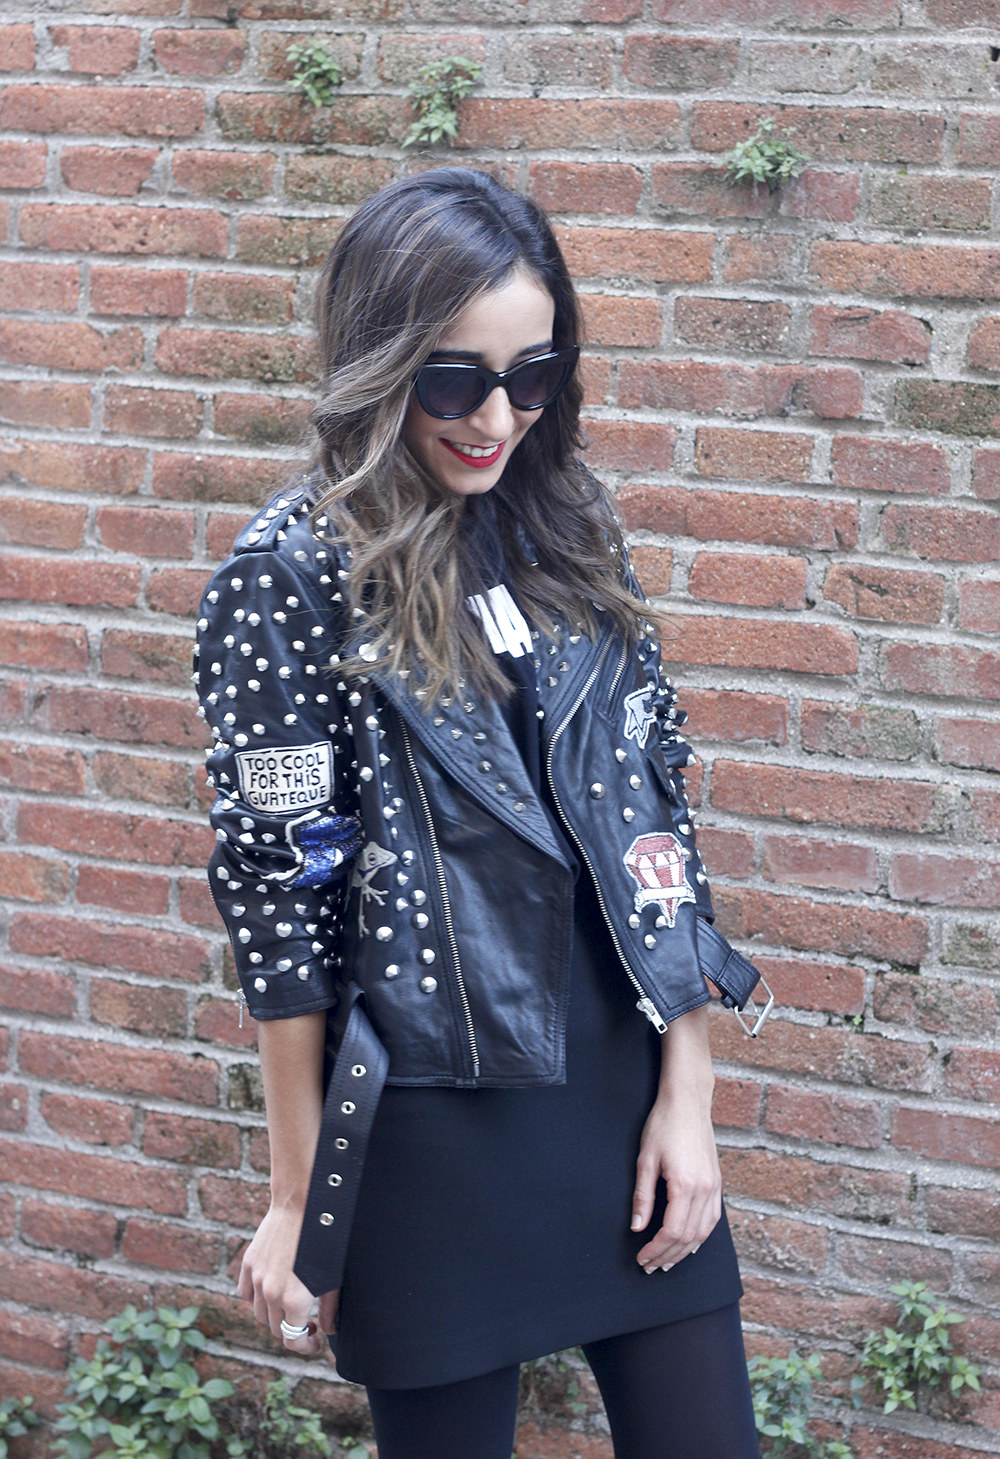 Leather jacket with studs and patches black skirt heels style fashion outfit10